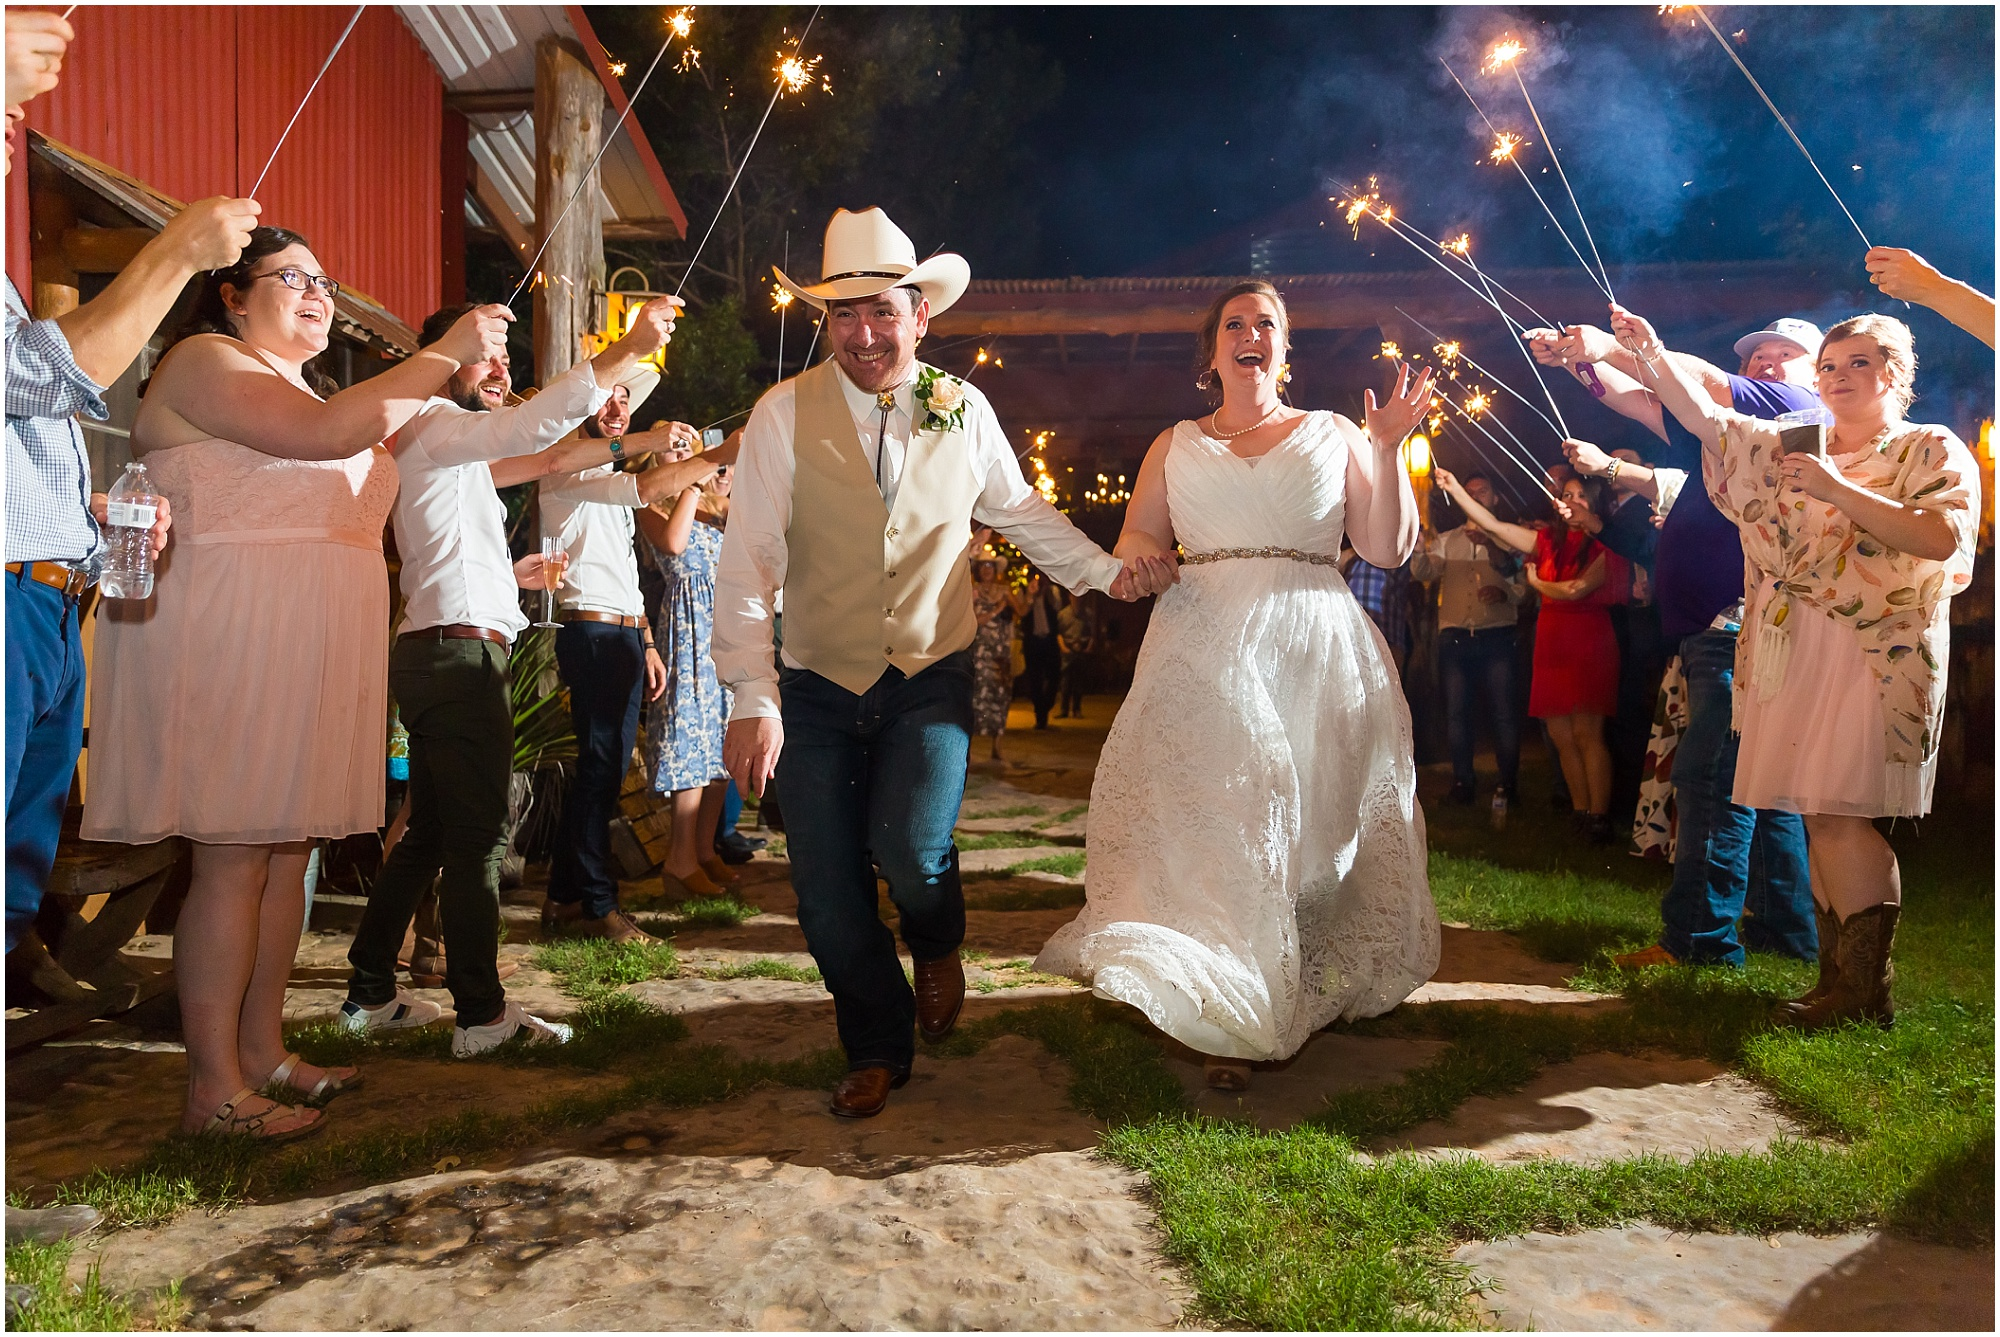 A groom and his bride run through a tunnel of their loved ones holding up sparklers as they leave their wedding reception at Moon River Ranch | Jason & Melaina Photography | www.jasonandmelaina.com